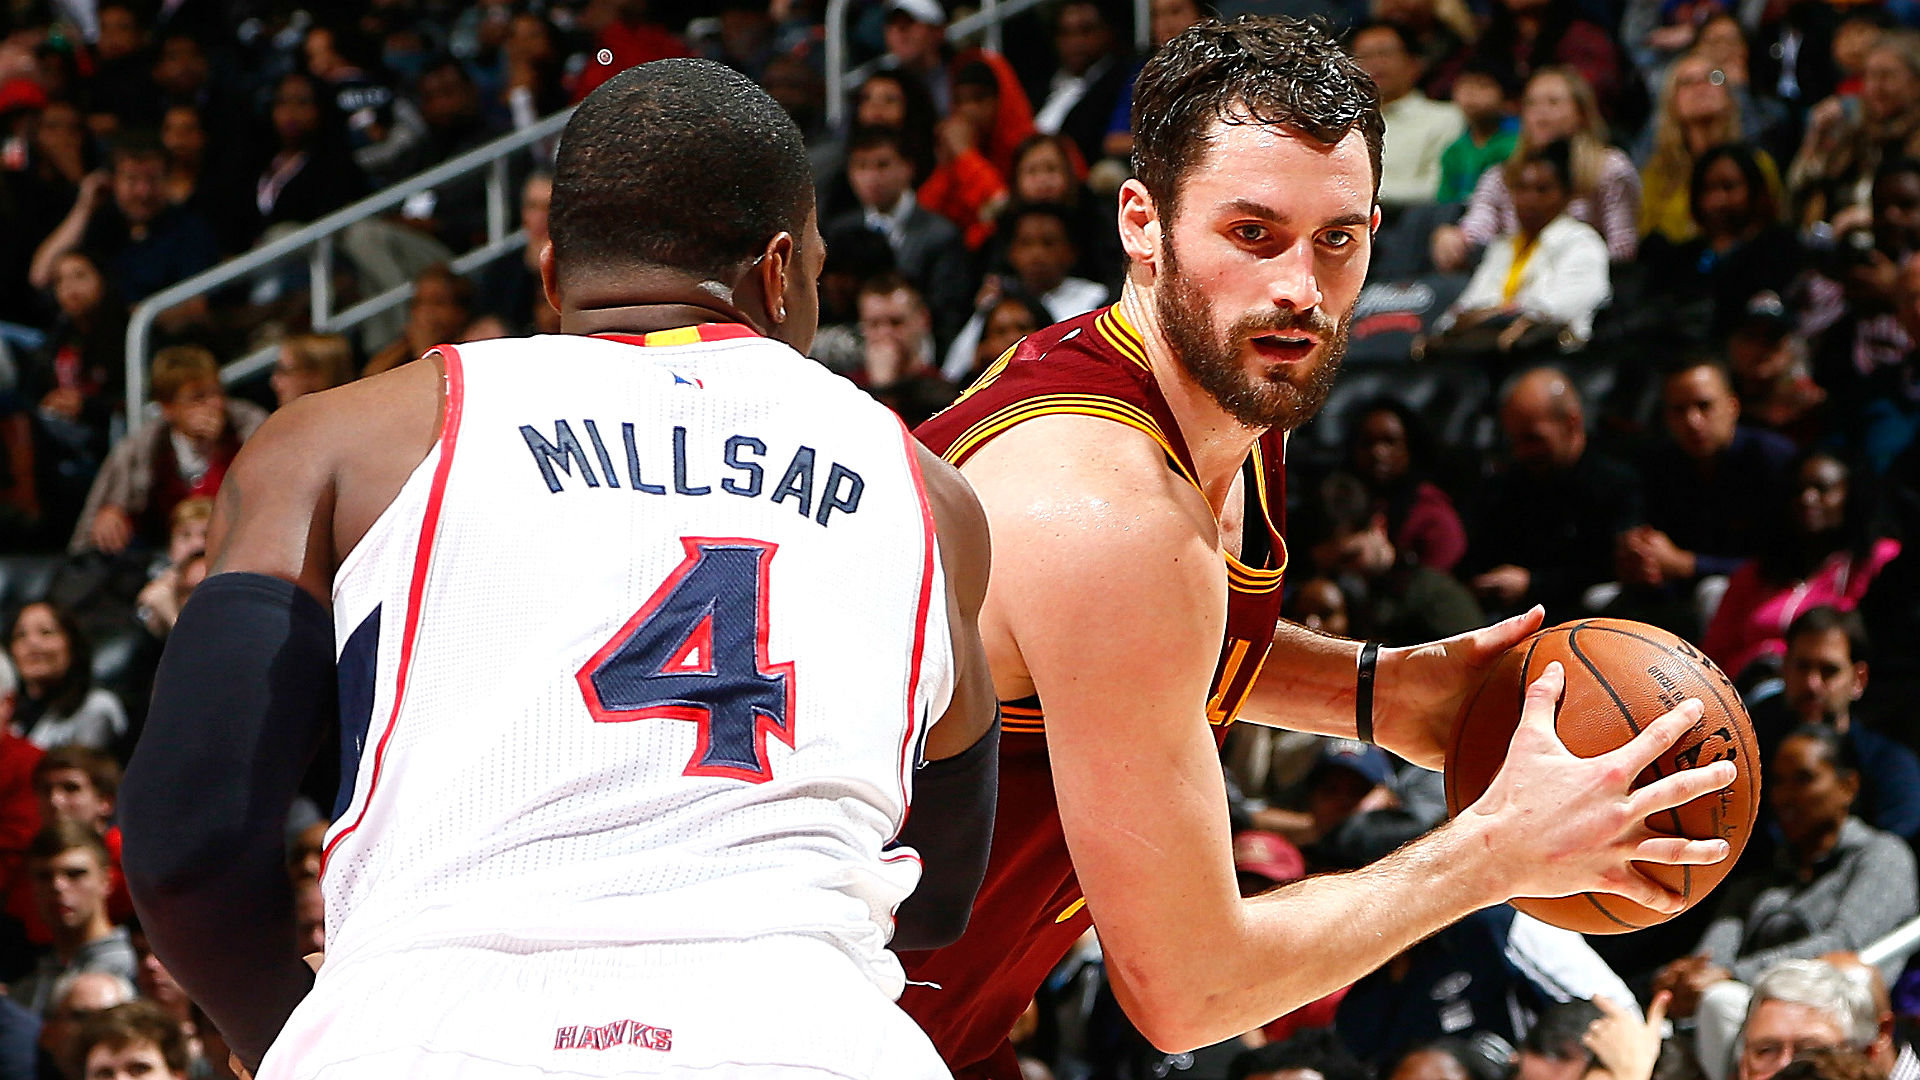 NBA betting lines and picks - Cavaliers look to make statement in Atlanta